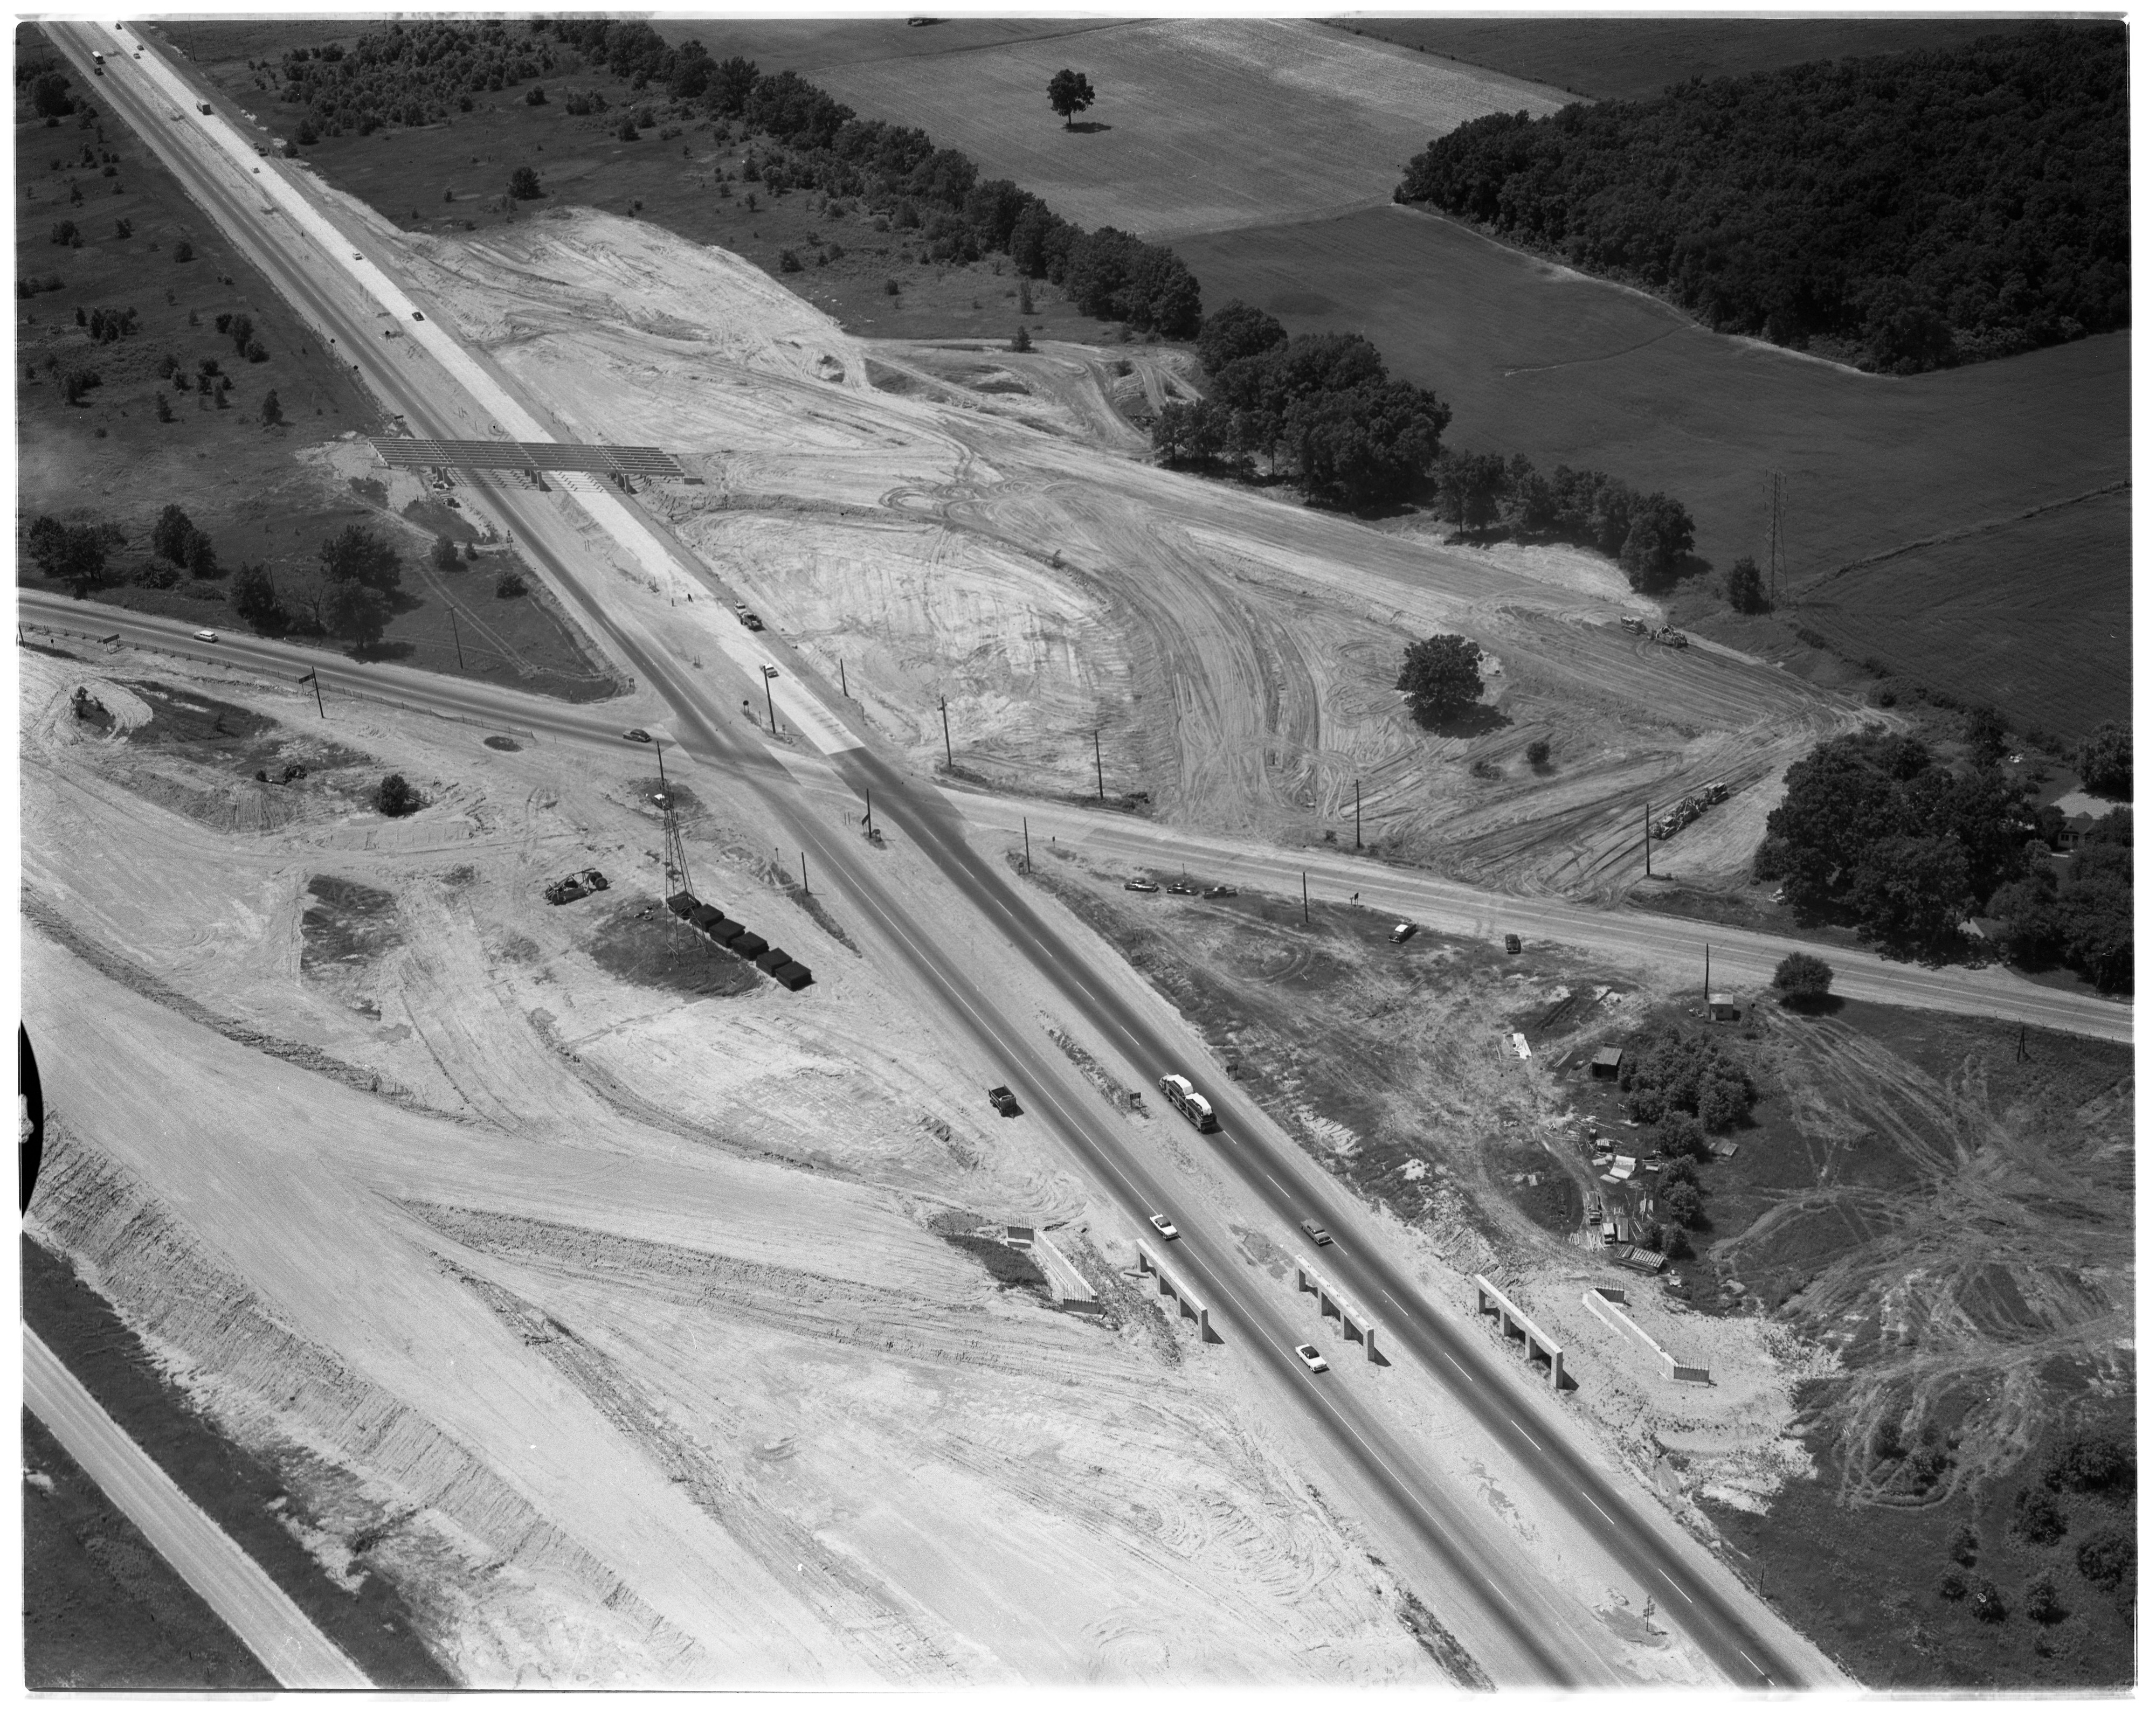 Aerial Photograph of W. Michigan Ave (US-112) Overpass, August 1956 image